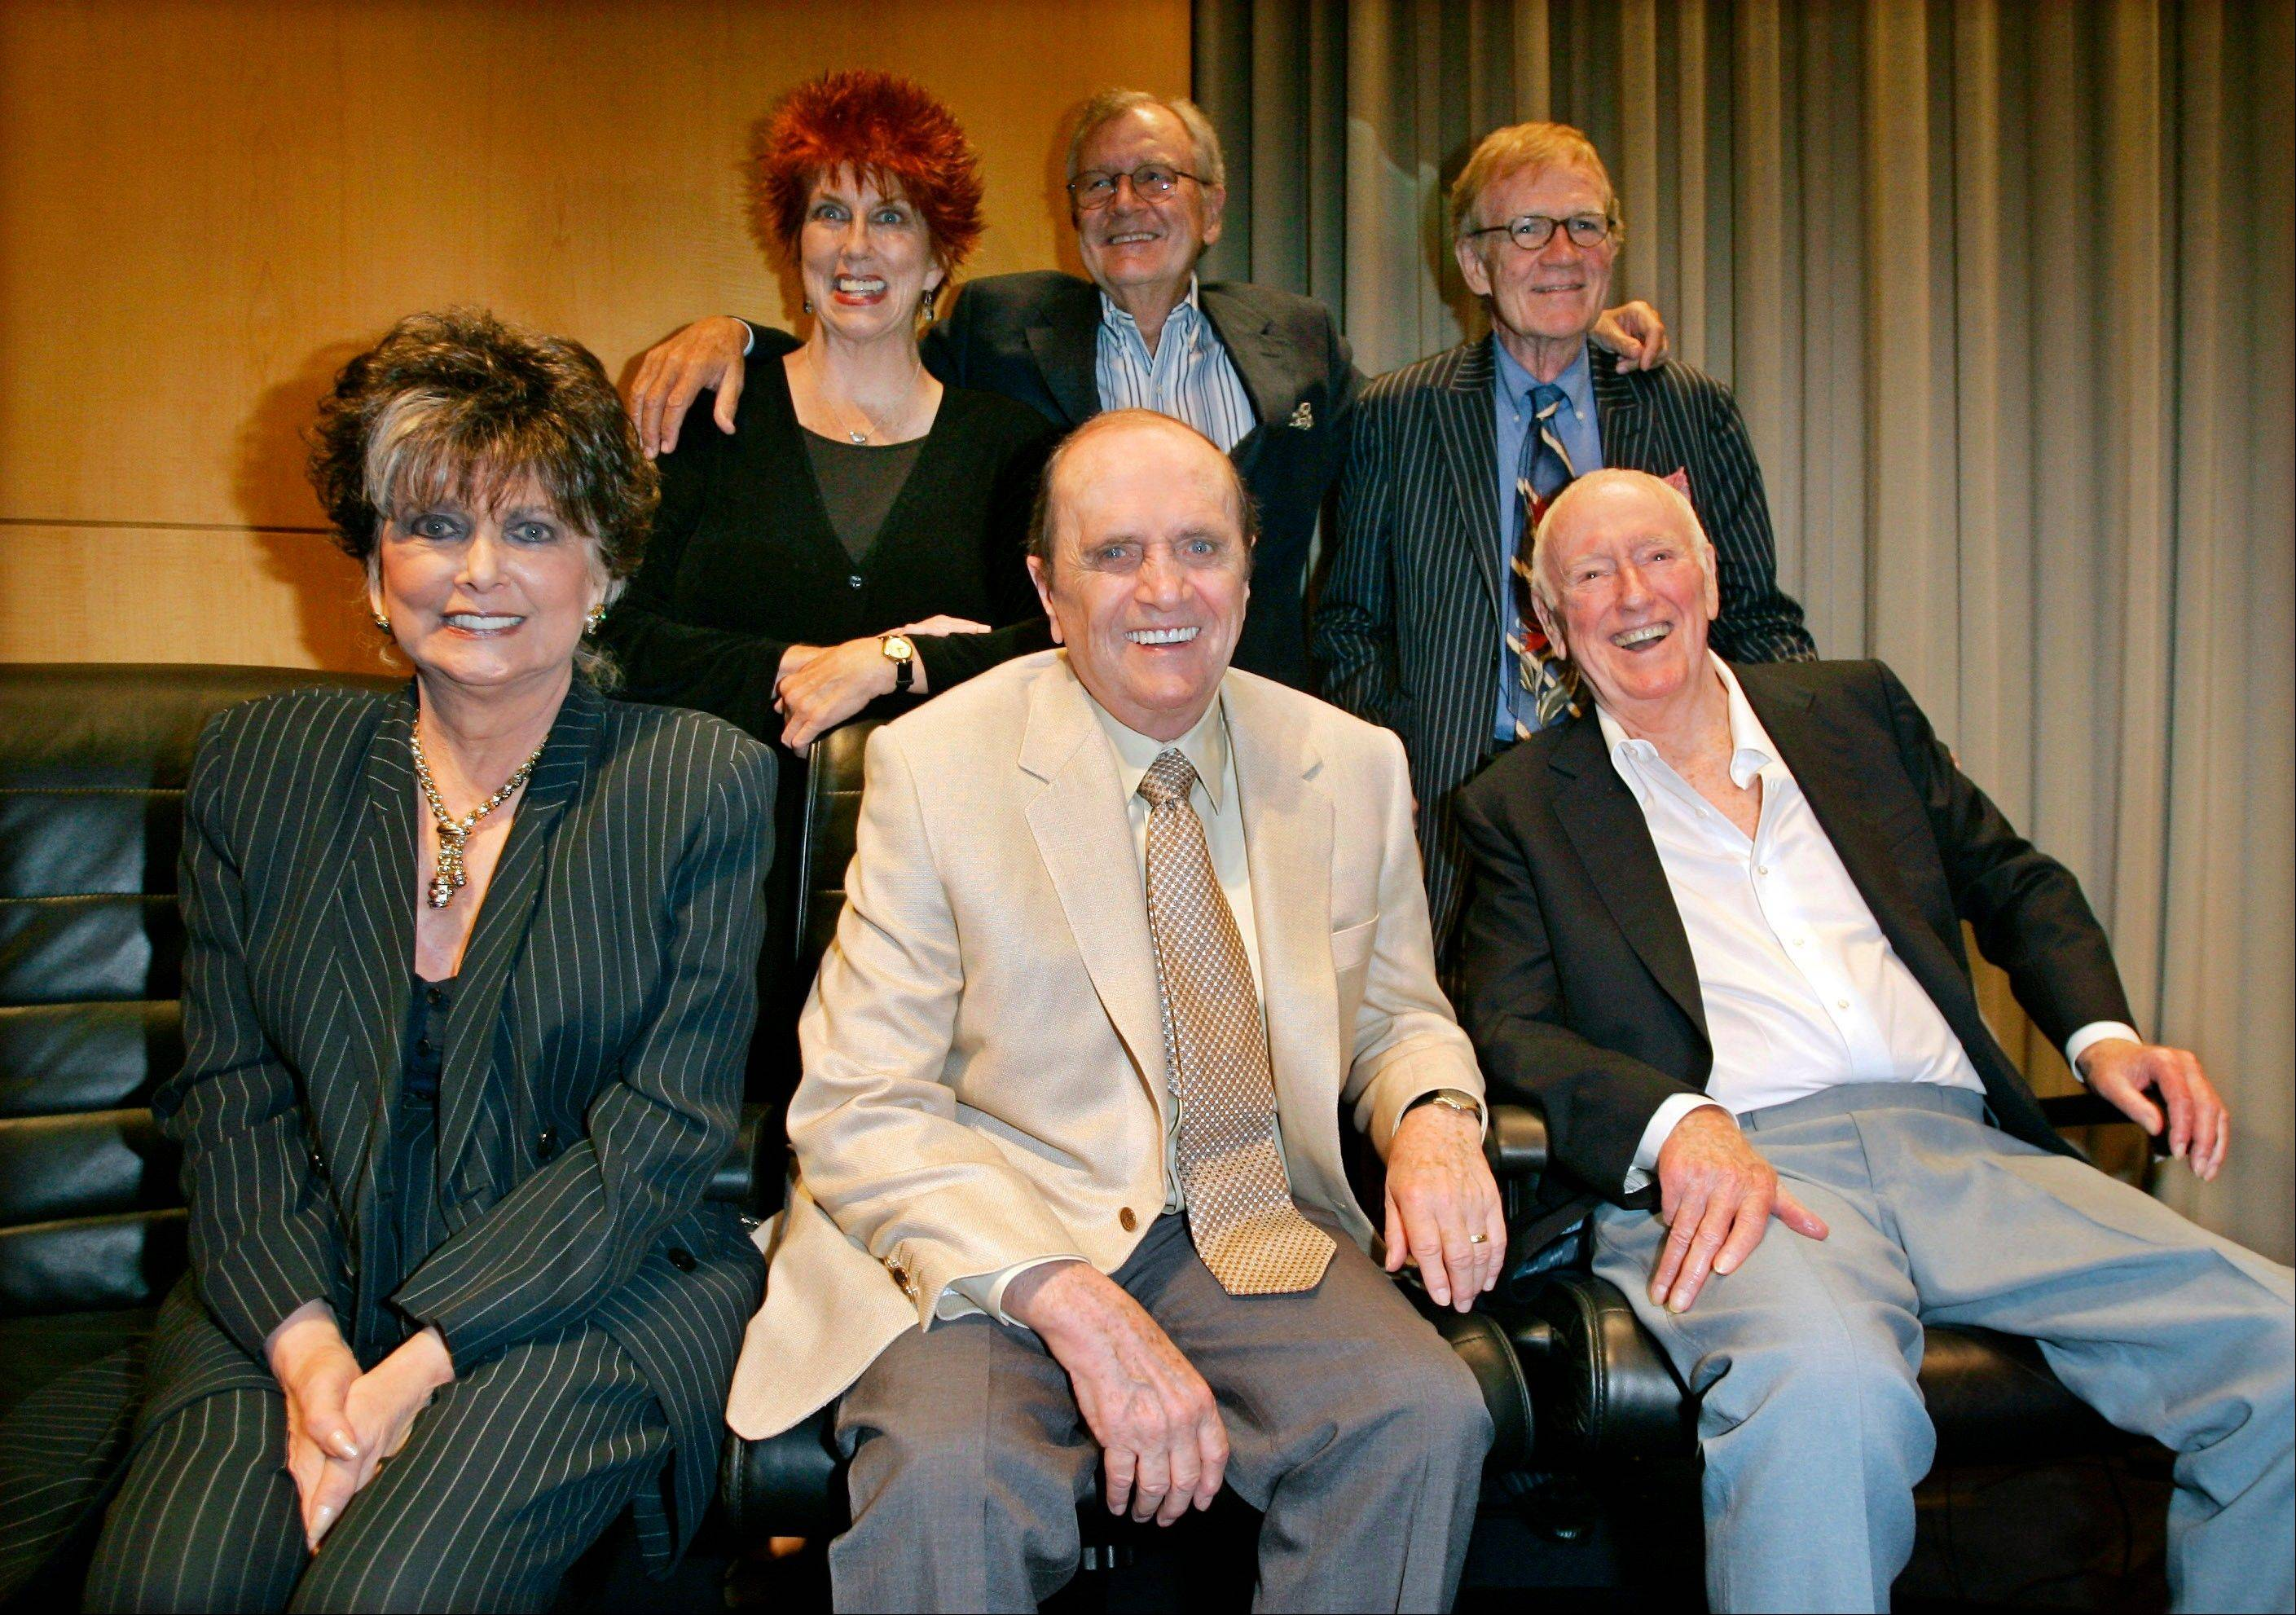 Associated Press/2007 Bob Newhart, center, sits with other members of the cast and crew of the �The Bob Newhart Show,� from top left, Marcia Wallace, Bill Daily, Jack Riley, and, from bottom lelt, Suzanne Pleshette and Dick Martin during TV Land�s 35th anniversary tribute to the program in Beverly Hills, Calif. Wallace, who played a receptionist on the show, and the voice of Edna Krabappel on �The Simpsons,� died Saturday.